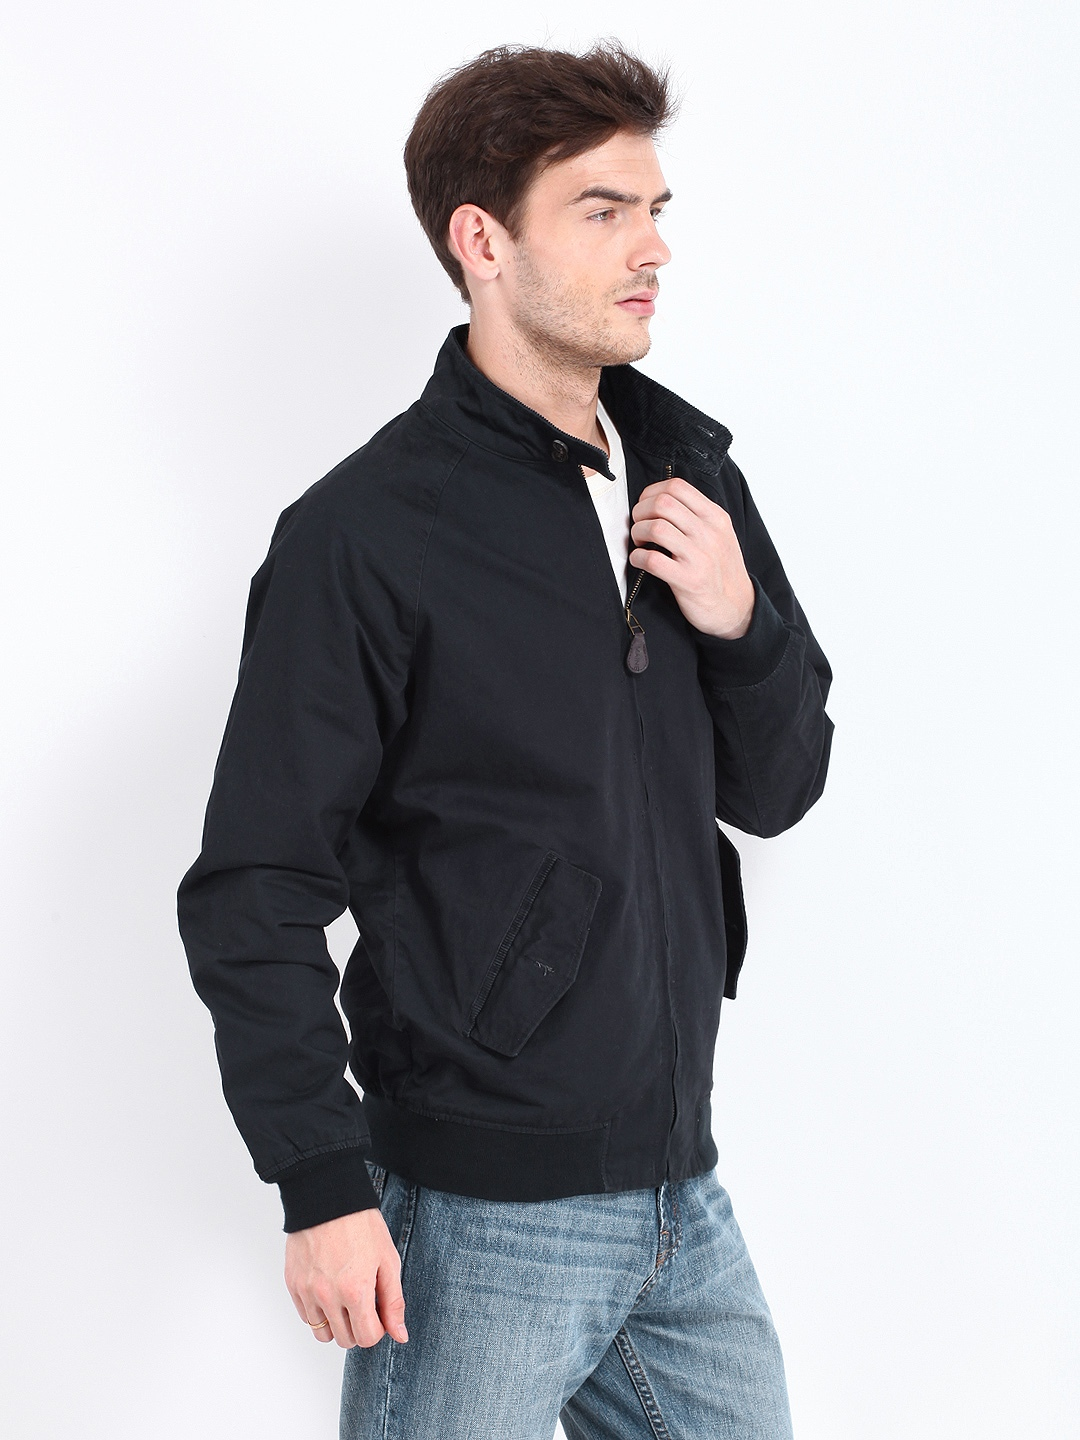 Mens black denim jacket debenhams – Modern fashion jacket photo blog